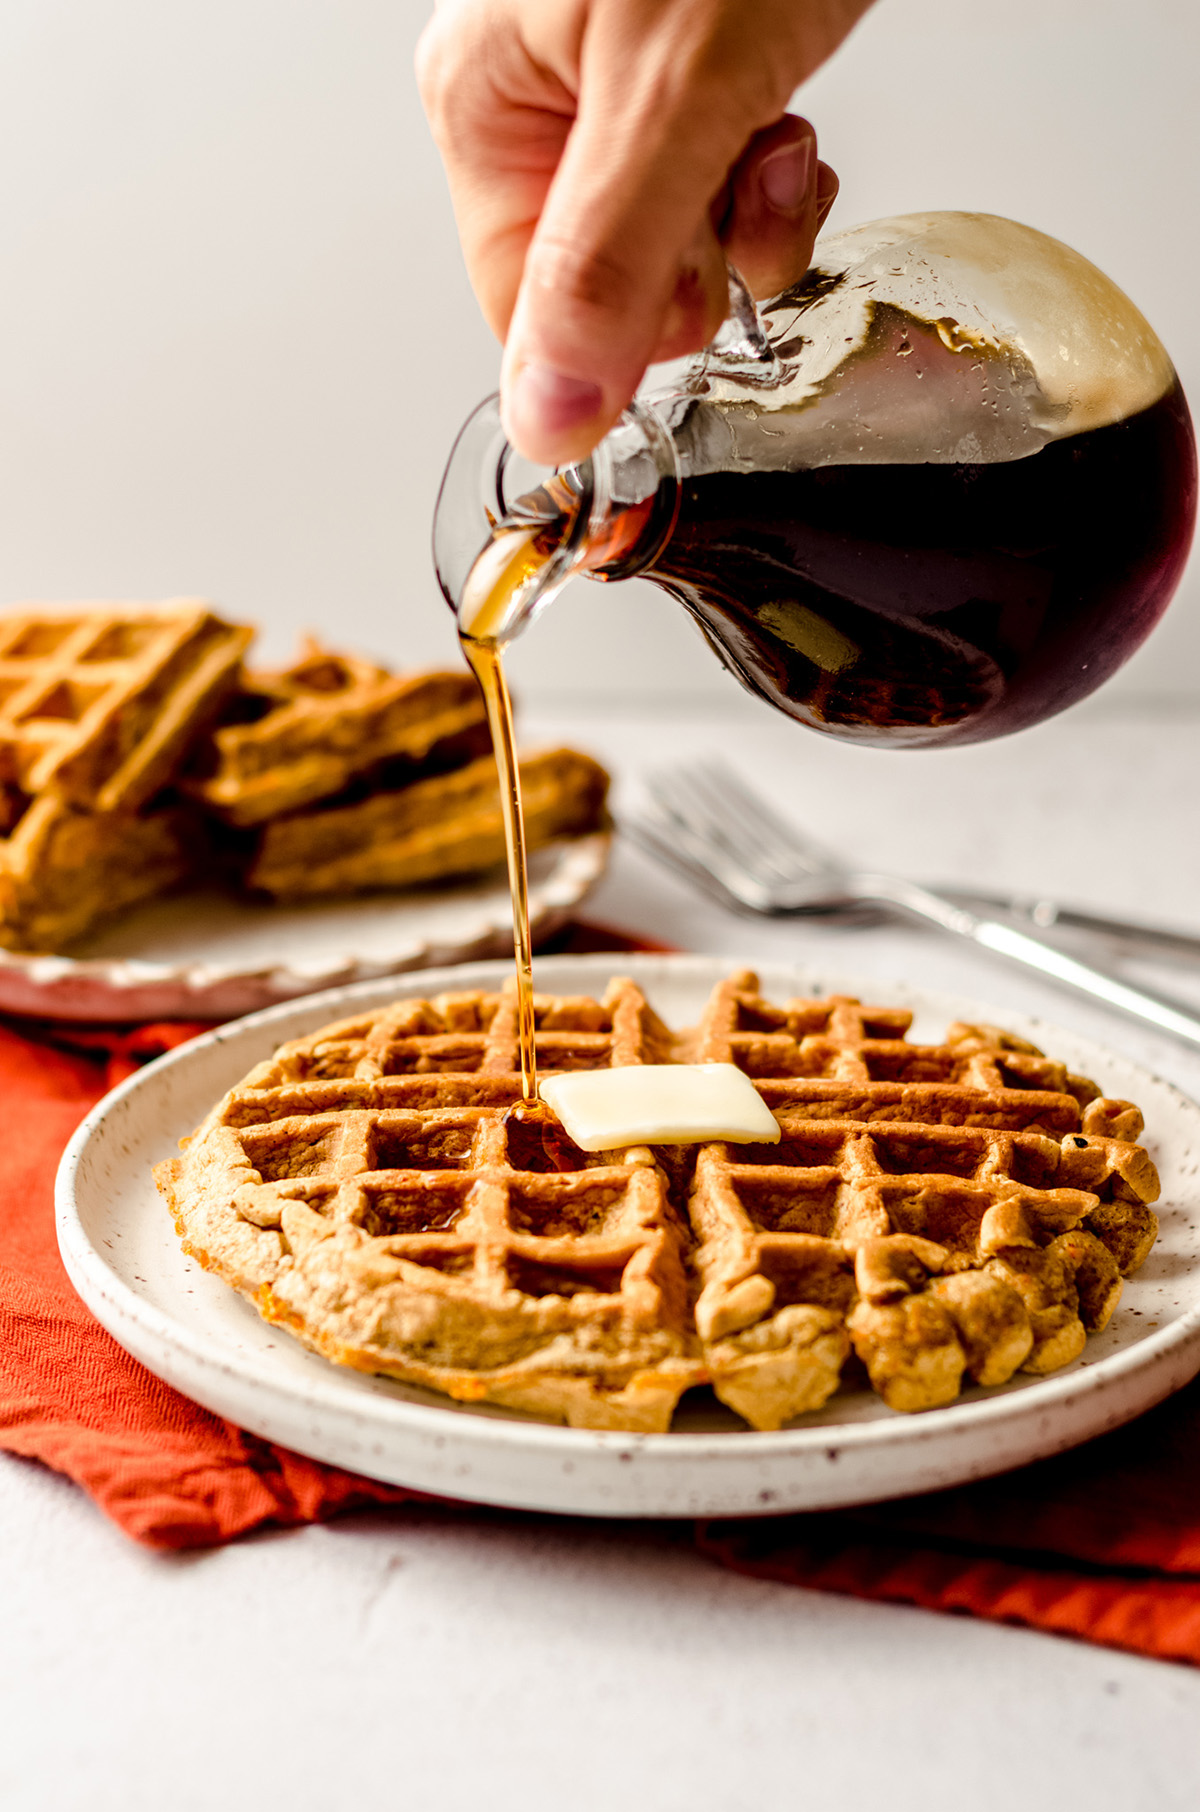 pouring syrup onto carrot cake waffles